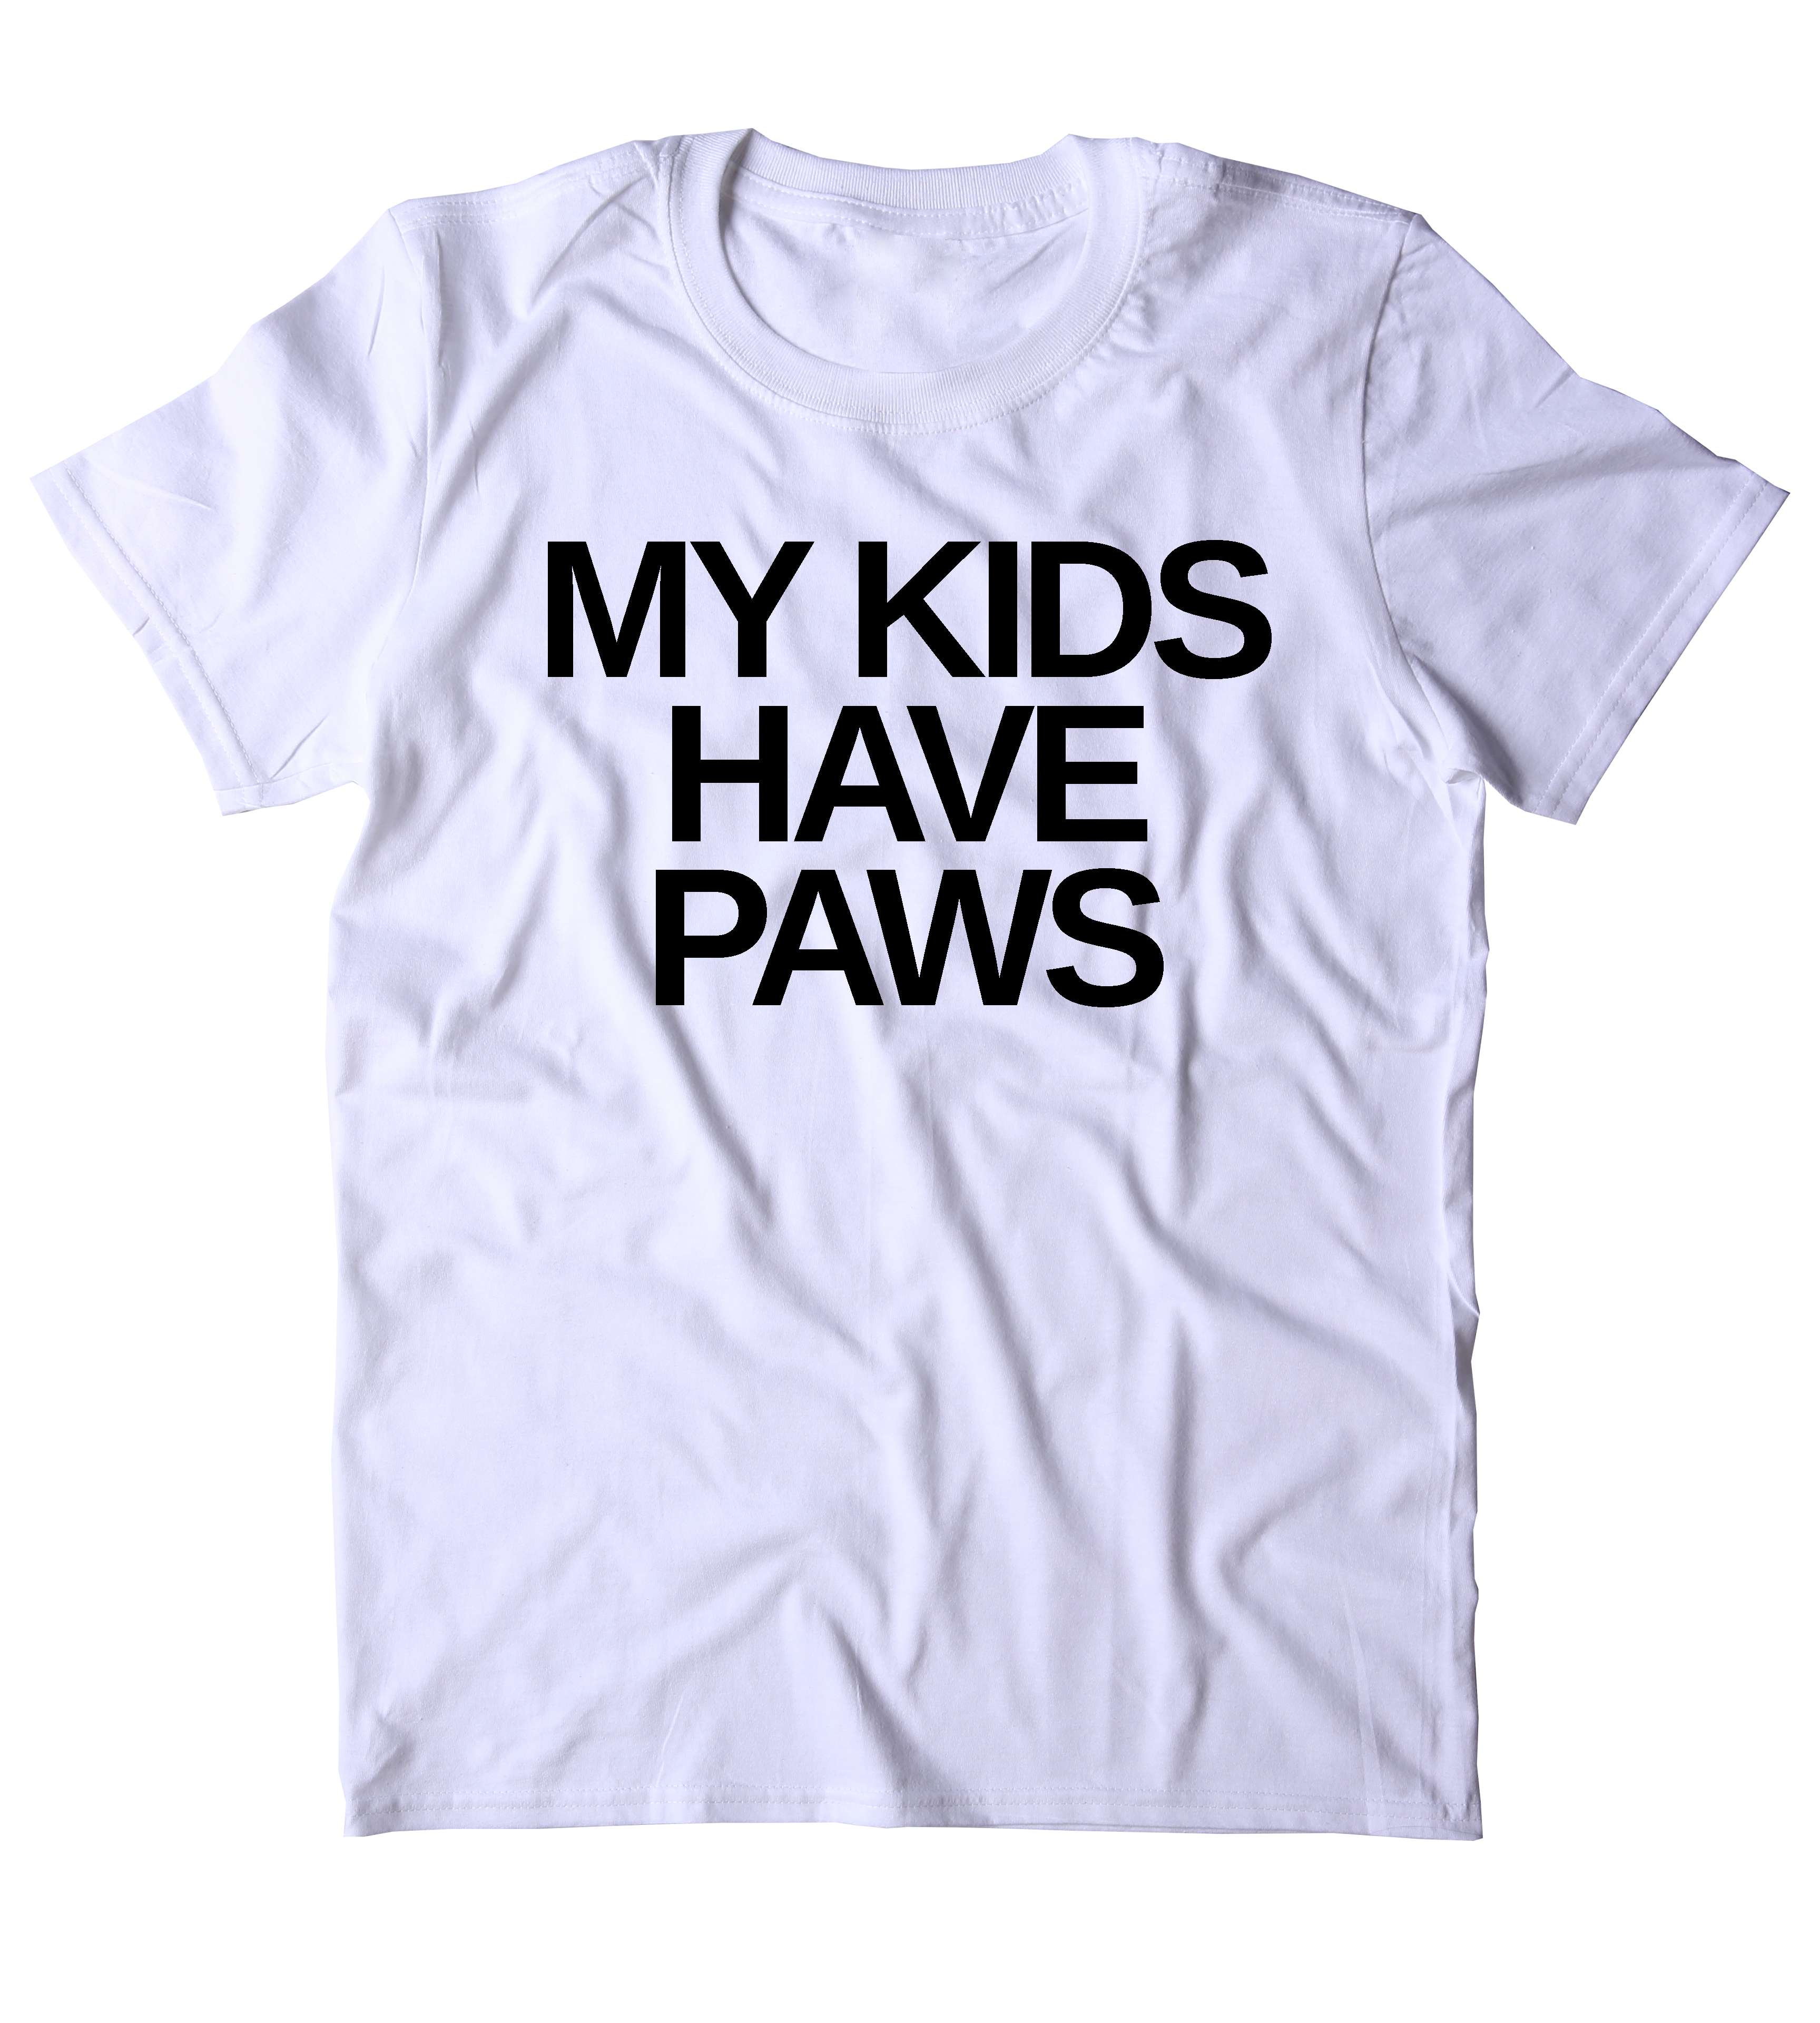 133f489f5 My Kids Have Paws T-Shirt Funny Cat Dog Bunny Lover Animal Clothing Tumblr  Shirt on Storenvy